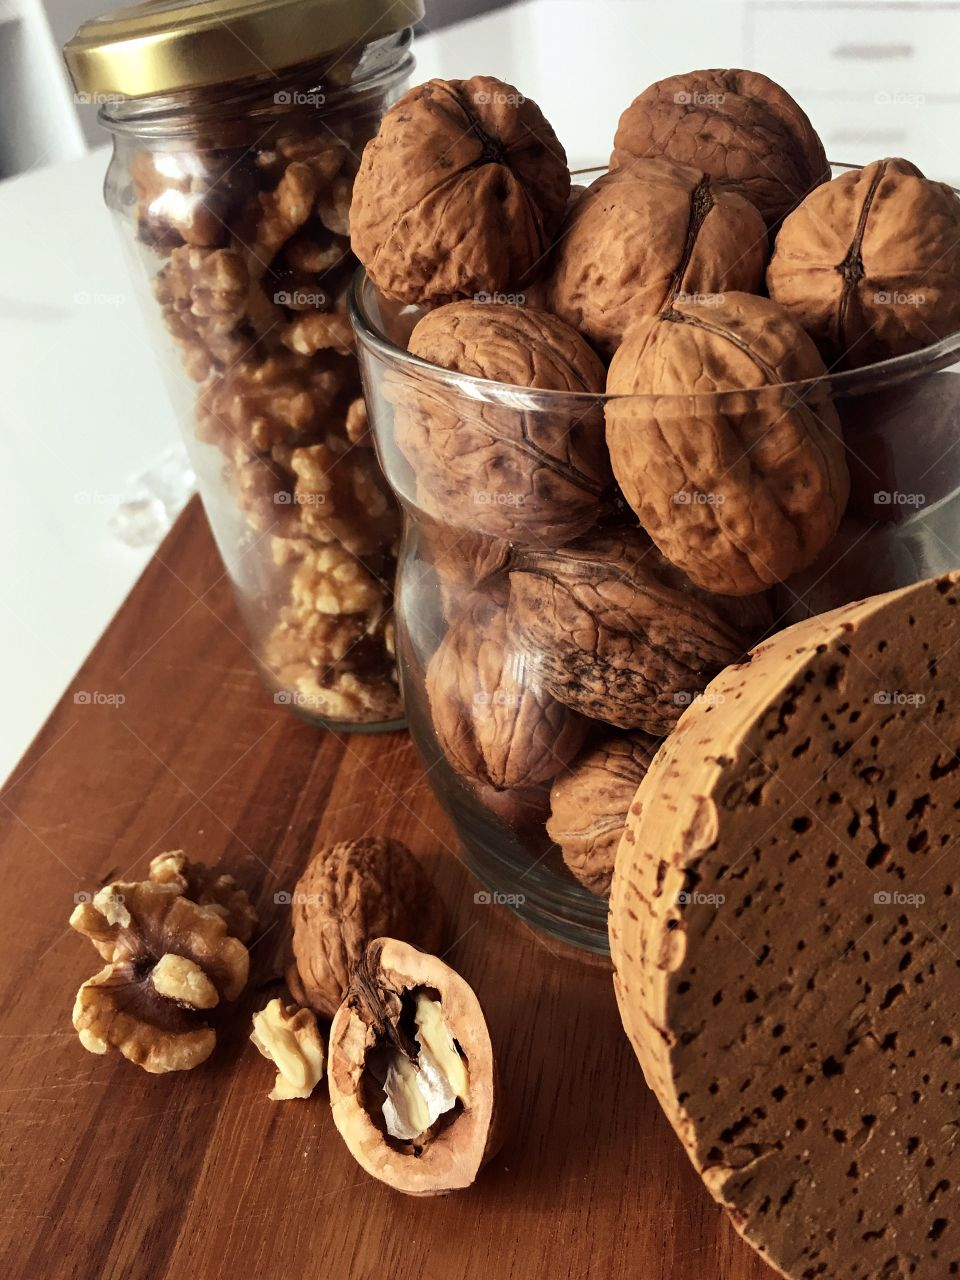 Walnut jars. Organized cutting board for crush and open walnuts. Matching colors make pure line pic.